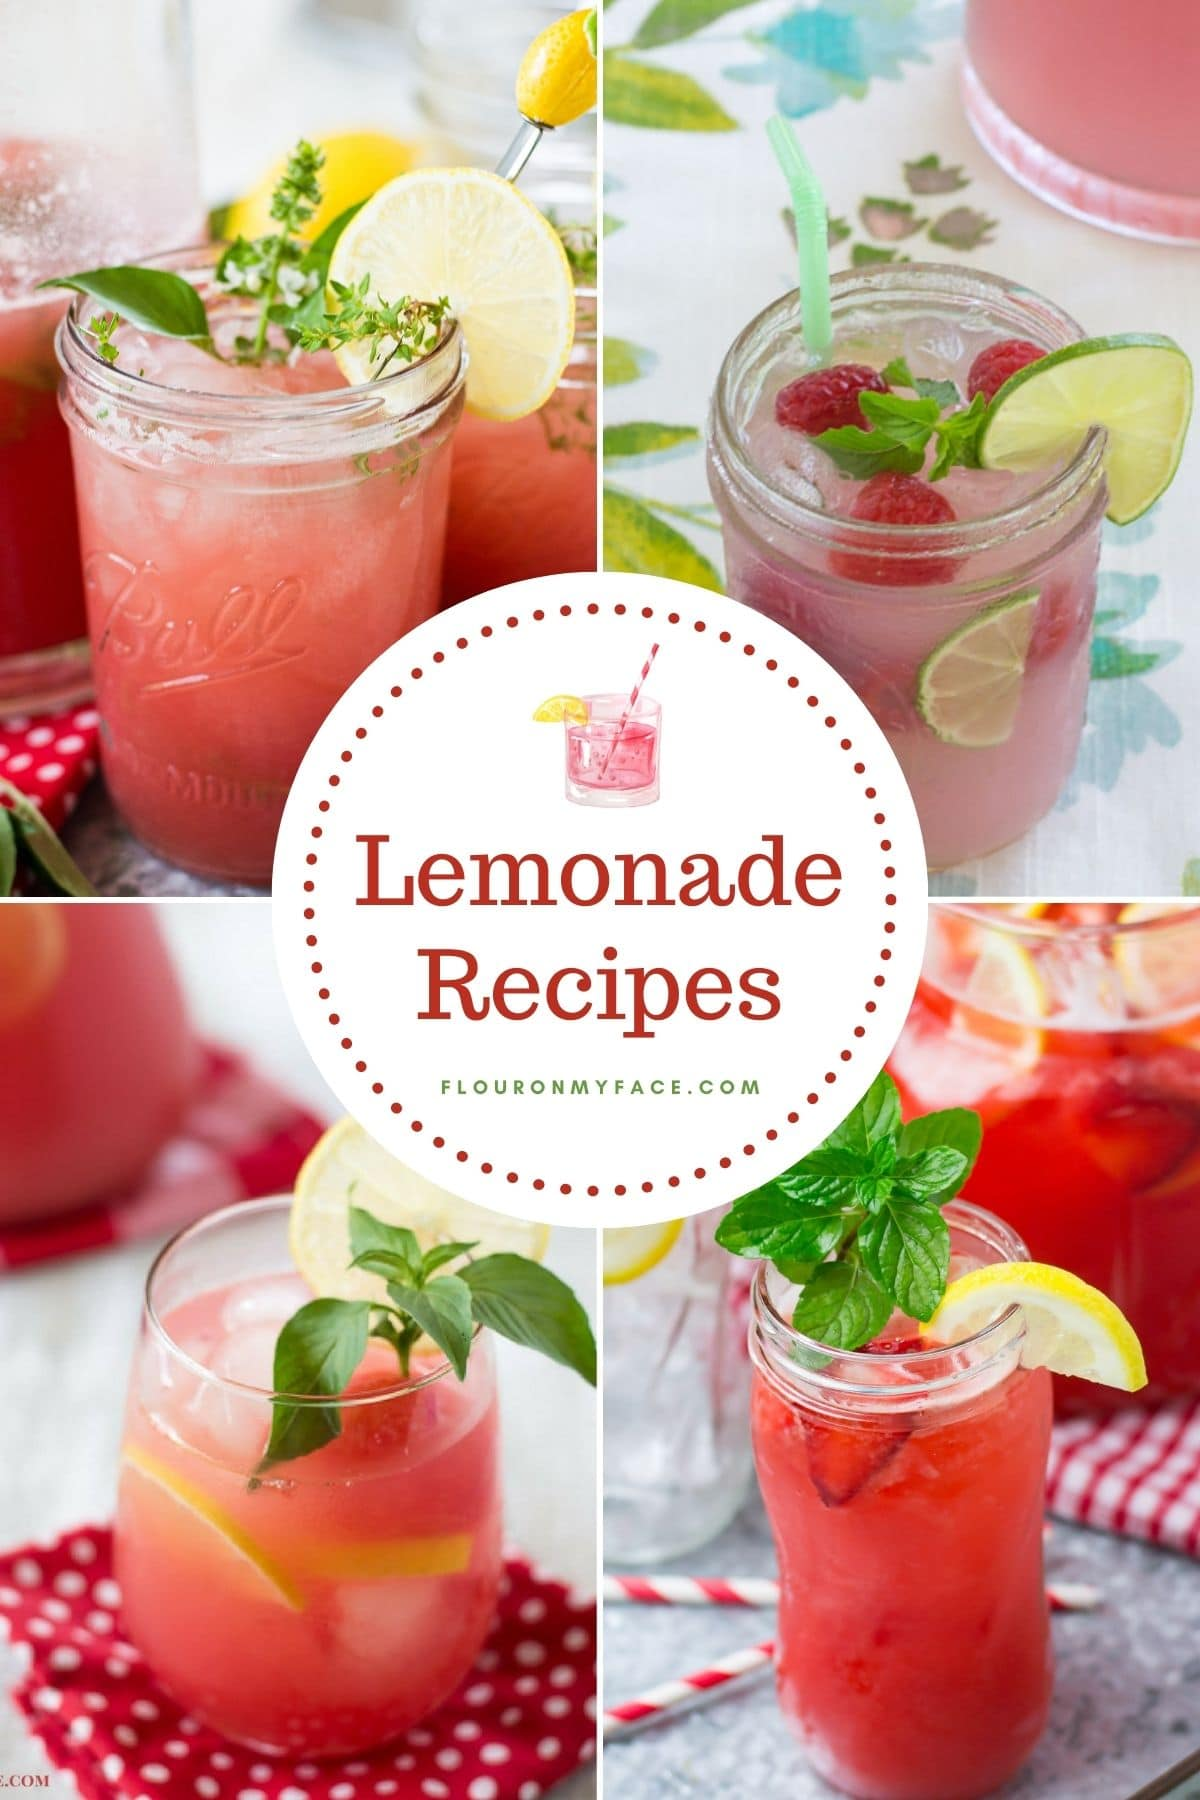 Four photo collage of fruity and herbal flavored homemade lemonade recipes.